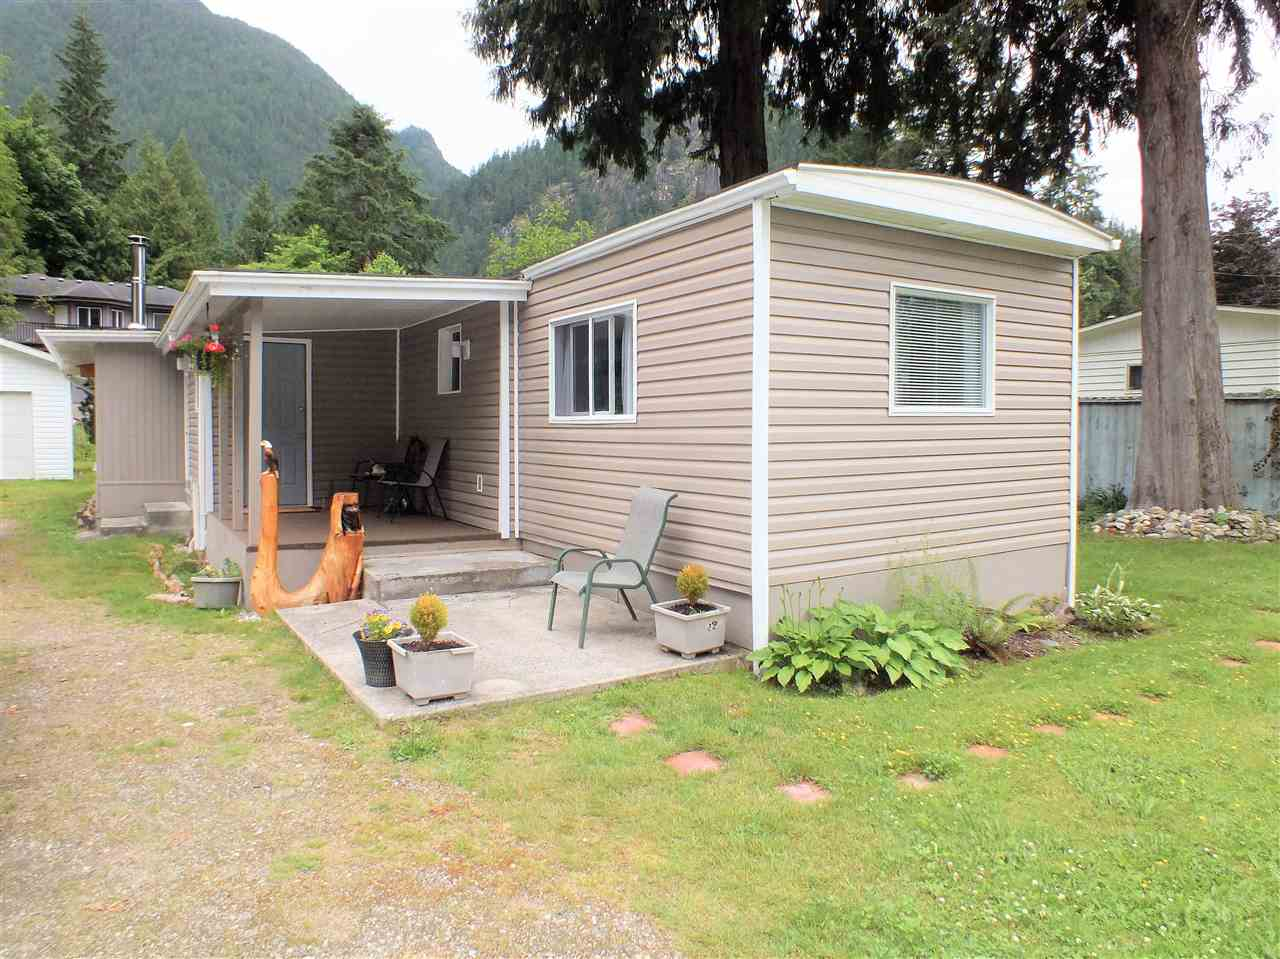 3 bdrm de-registered manufactured home w addition and detached 14' x 24' workshop. Located on private .21 acre lot this affordable charmer has very appealing modern finishings, quality appliances 1125 sq. ft. of living space and plenty of RV & vehicle parking. Workshop/garage is perfect for the hobbyist or backyard mechanic. Plenty of flat useable yard for the avid gardener or lots of room for kids.